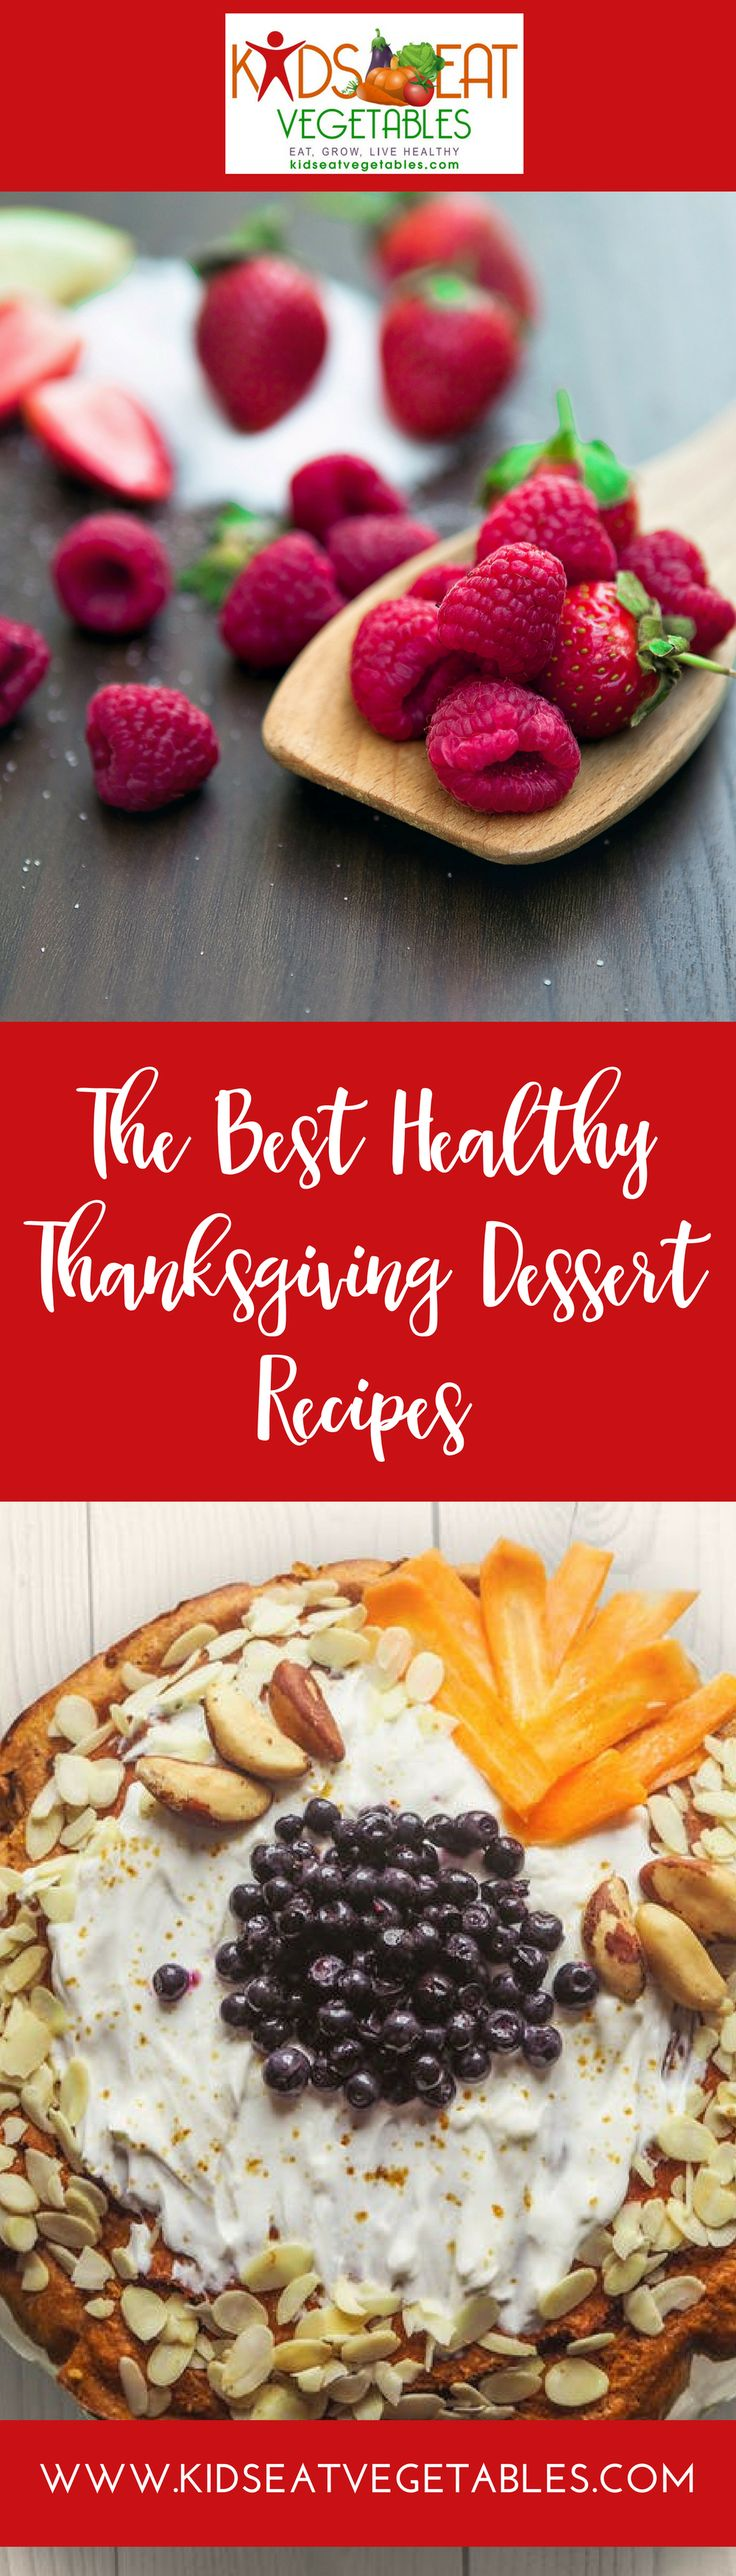 Ready to wow your #Thanksgiving guests in a healthy, festive way?  This roundup of fun, creative and best healthy #ThanksgivingDessertRecipes are sure to impress! Find your perfect #ThanksgivingDessert for your vegan and chocolate-loving crowds, alike, in our list of the best healthy Thanksgiving dessert recipes. #KidsEatVegetables